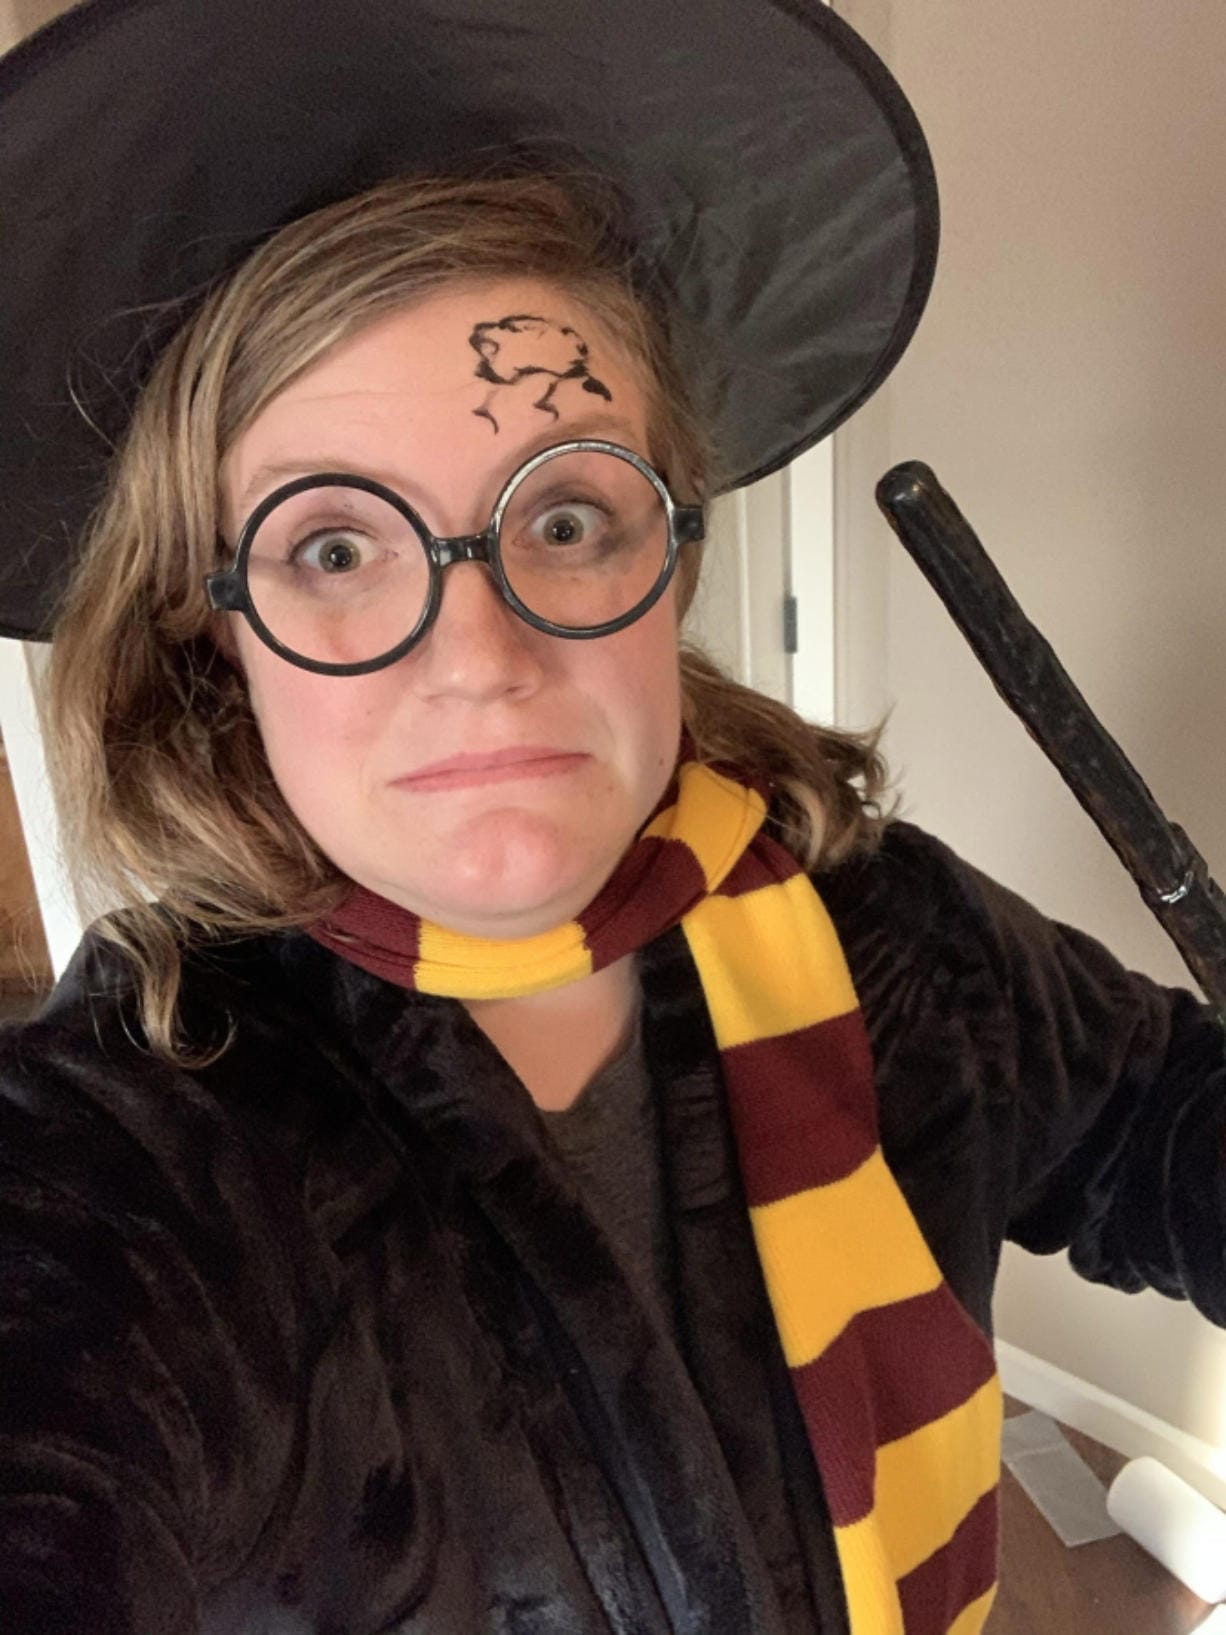 RIDGEFIELD: Marta the Mathematician is an alter ego of Southridge Elementary School third-grade teacher Kristen Potter, who started dressing up to engage students in her online classes.